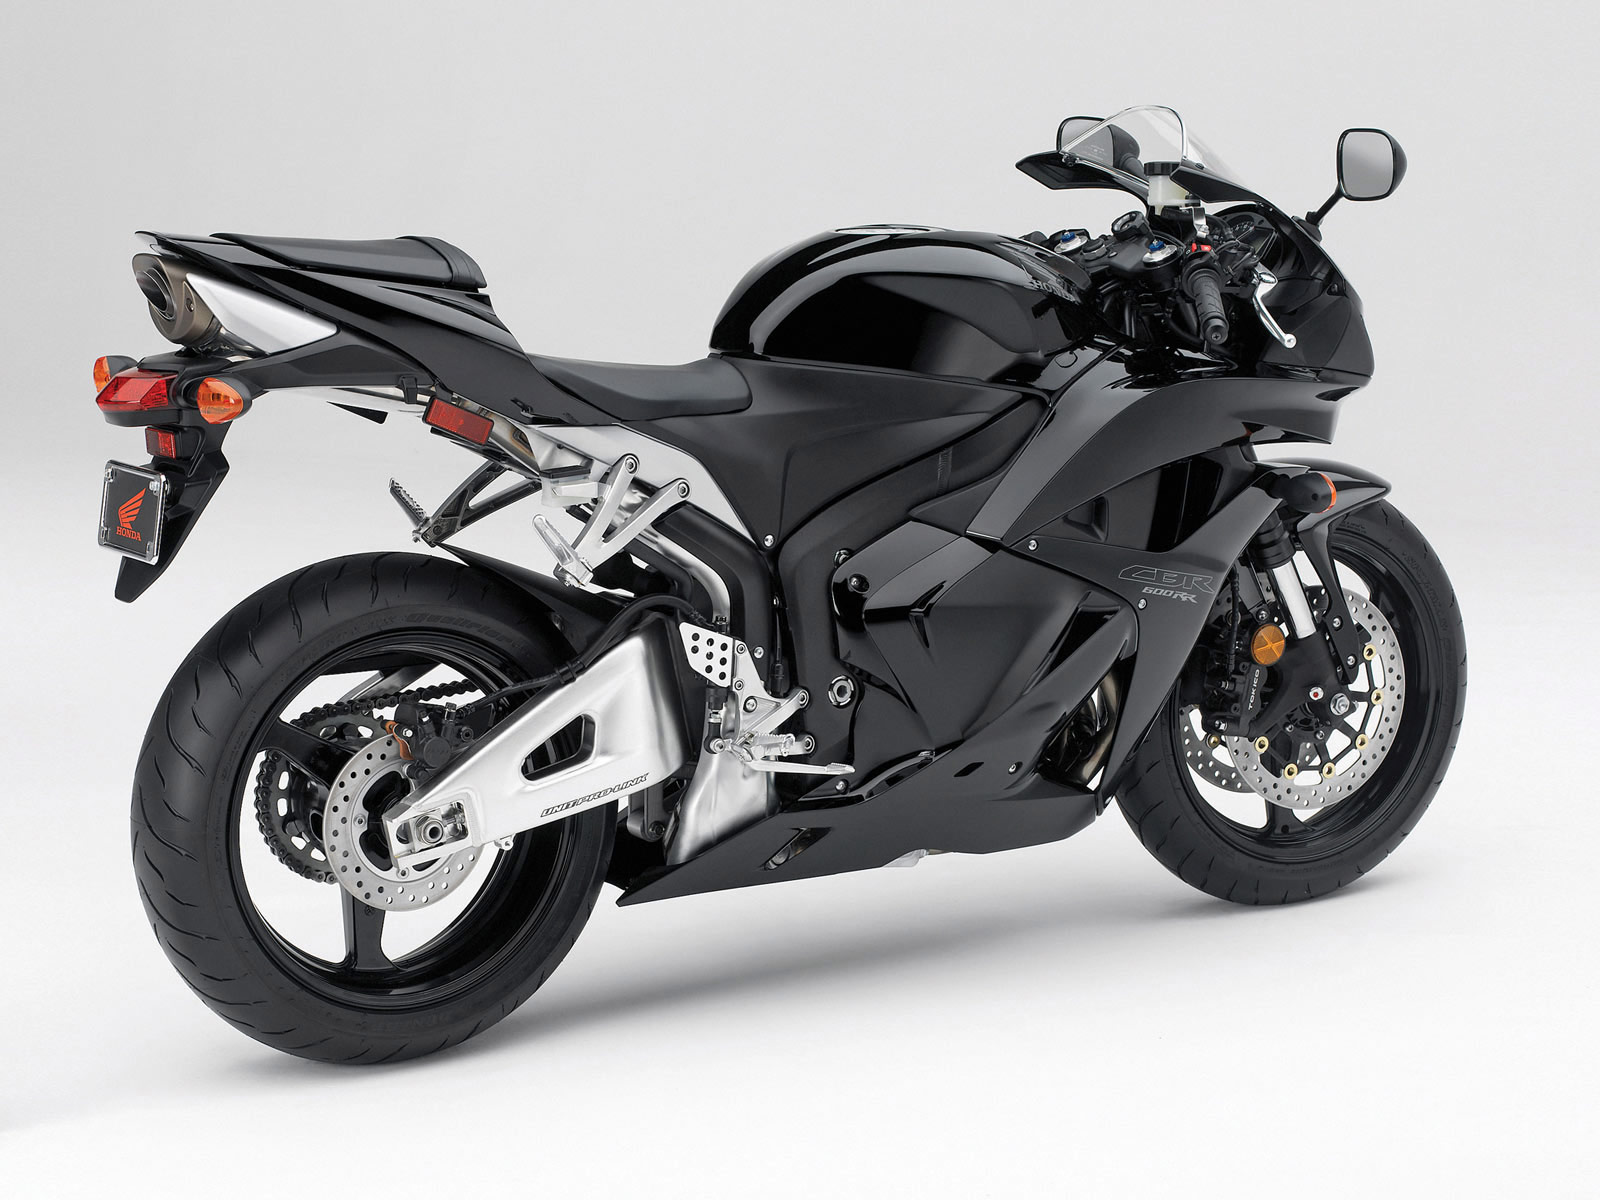 2011 Honda Cbr600rr Accident Lawyers Info Wallpaper